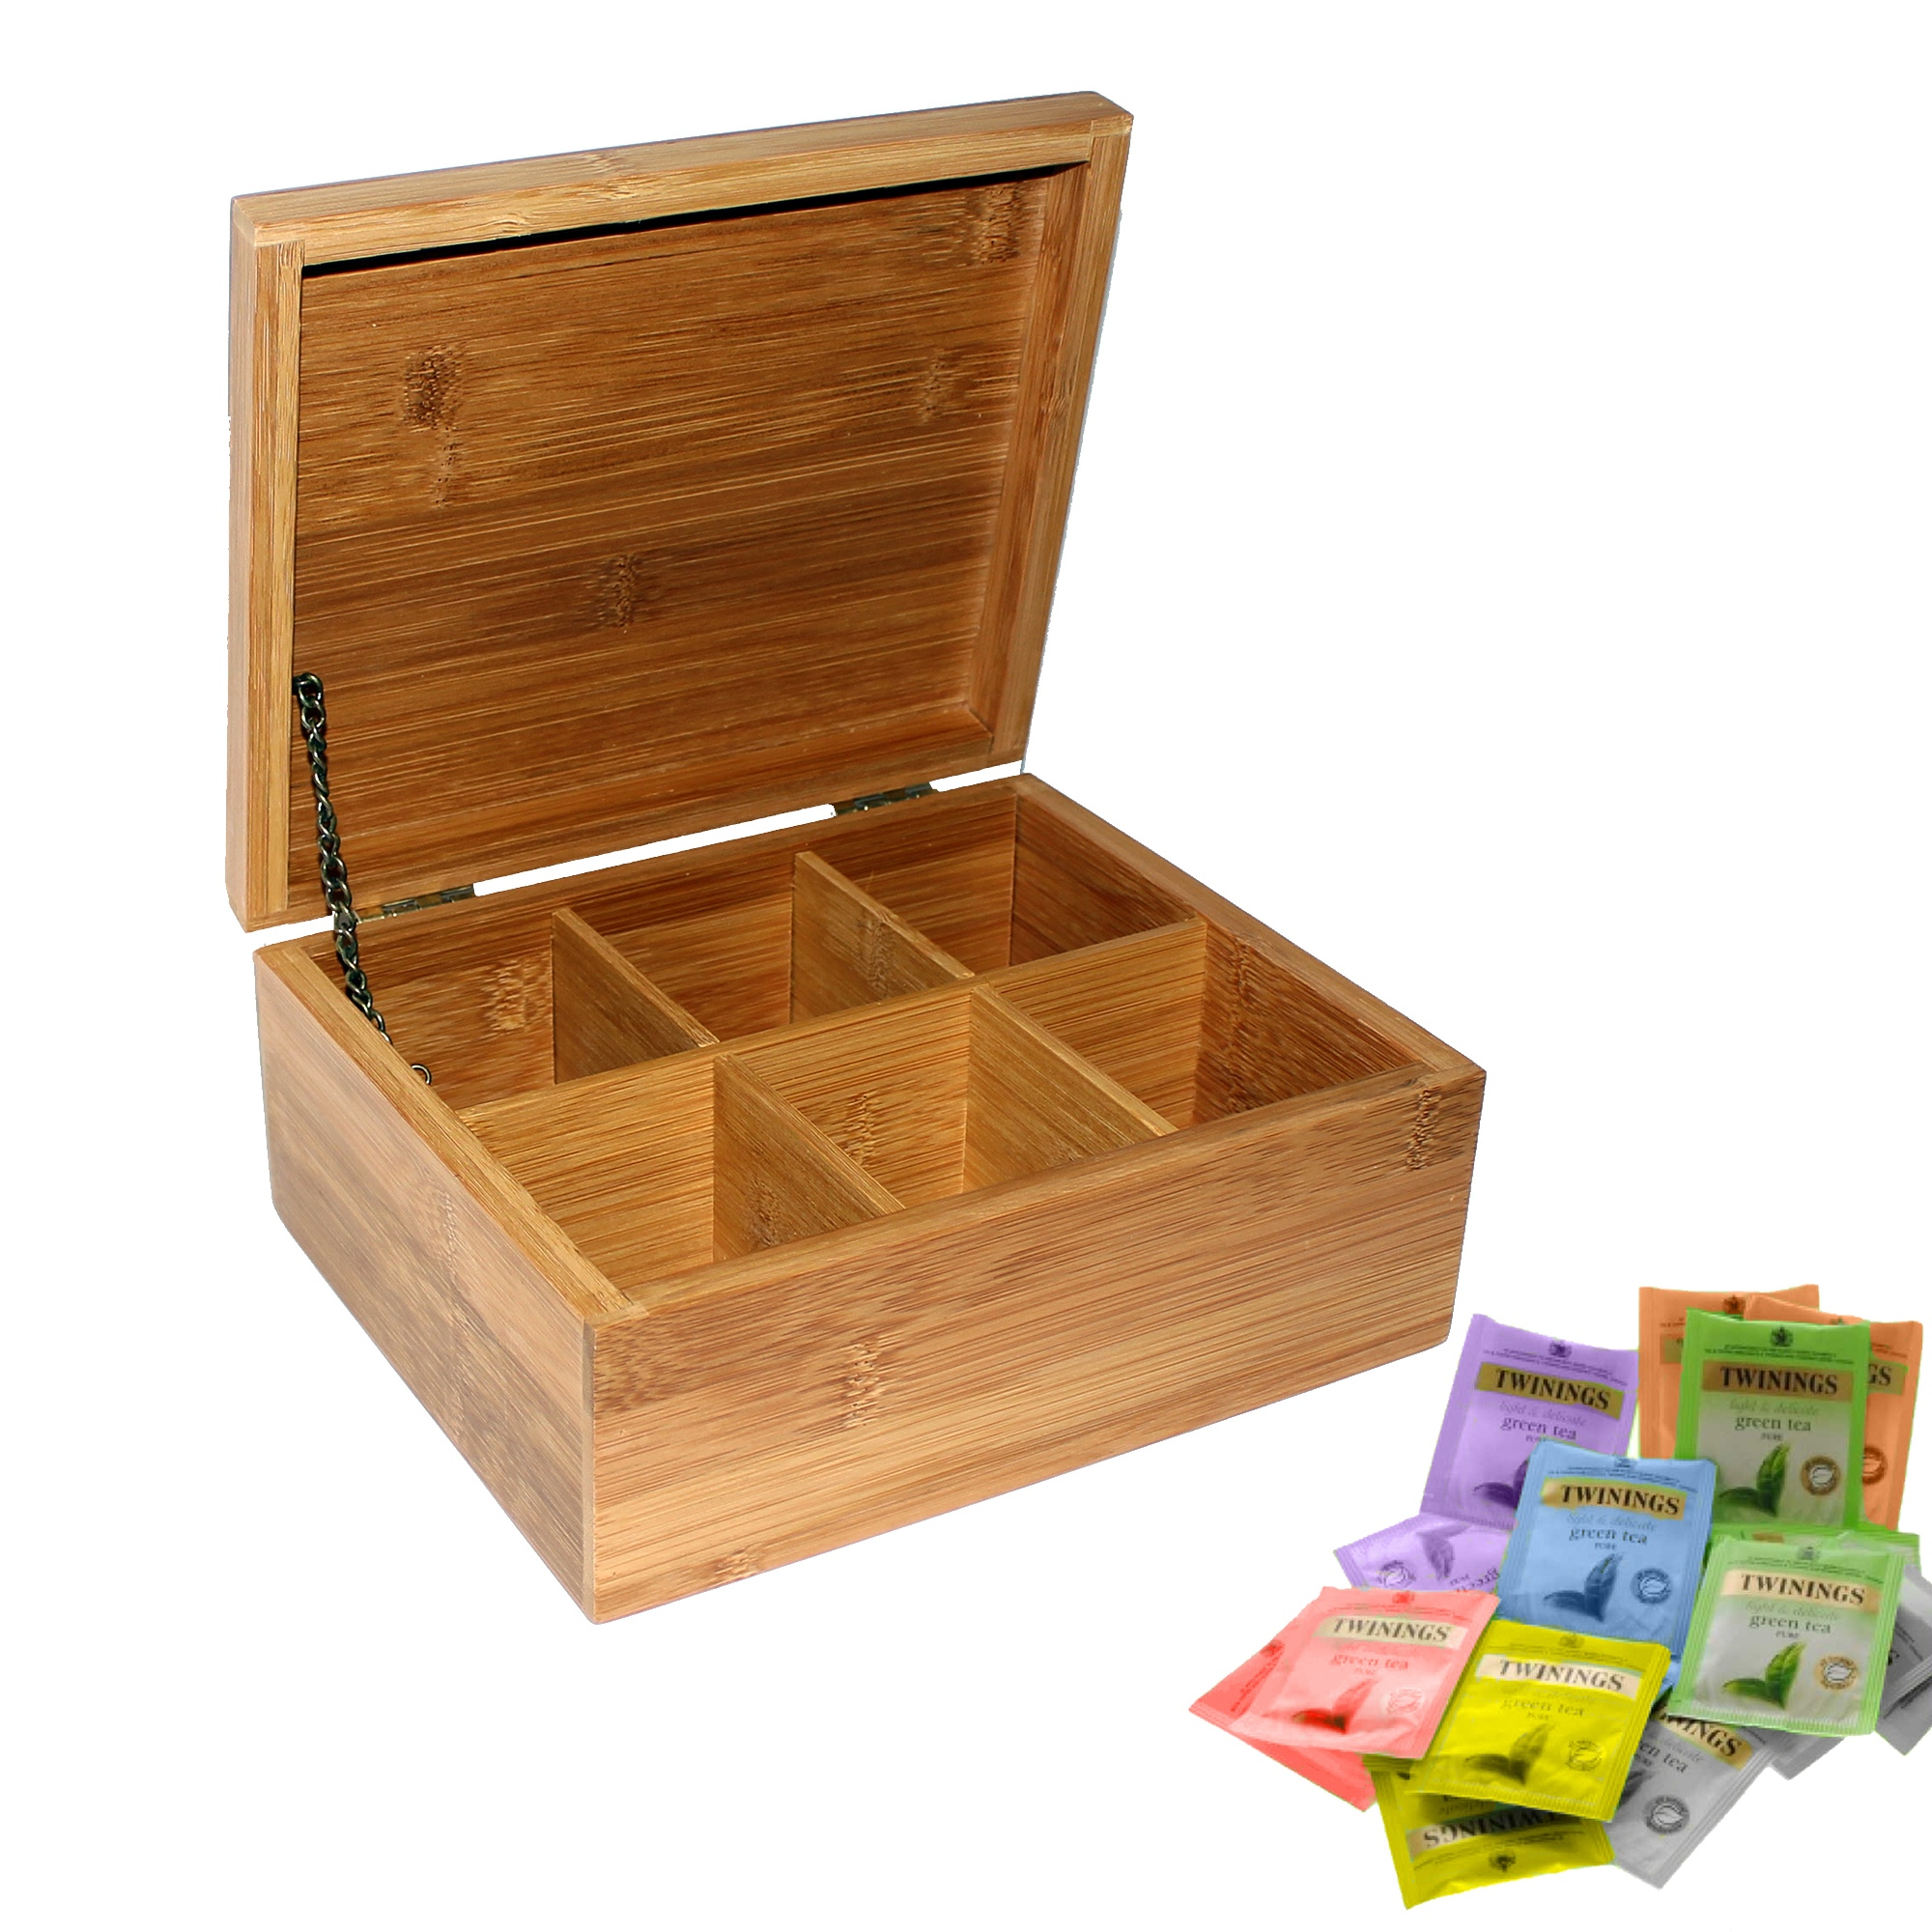 Wooden Bamboo Tea Box 6 Sections with Lid Compartments ...